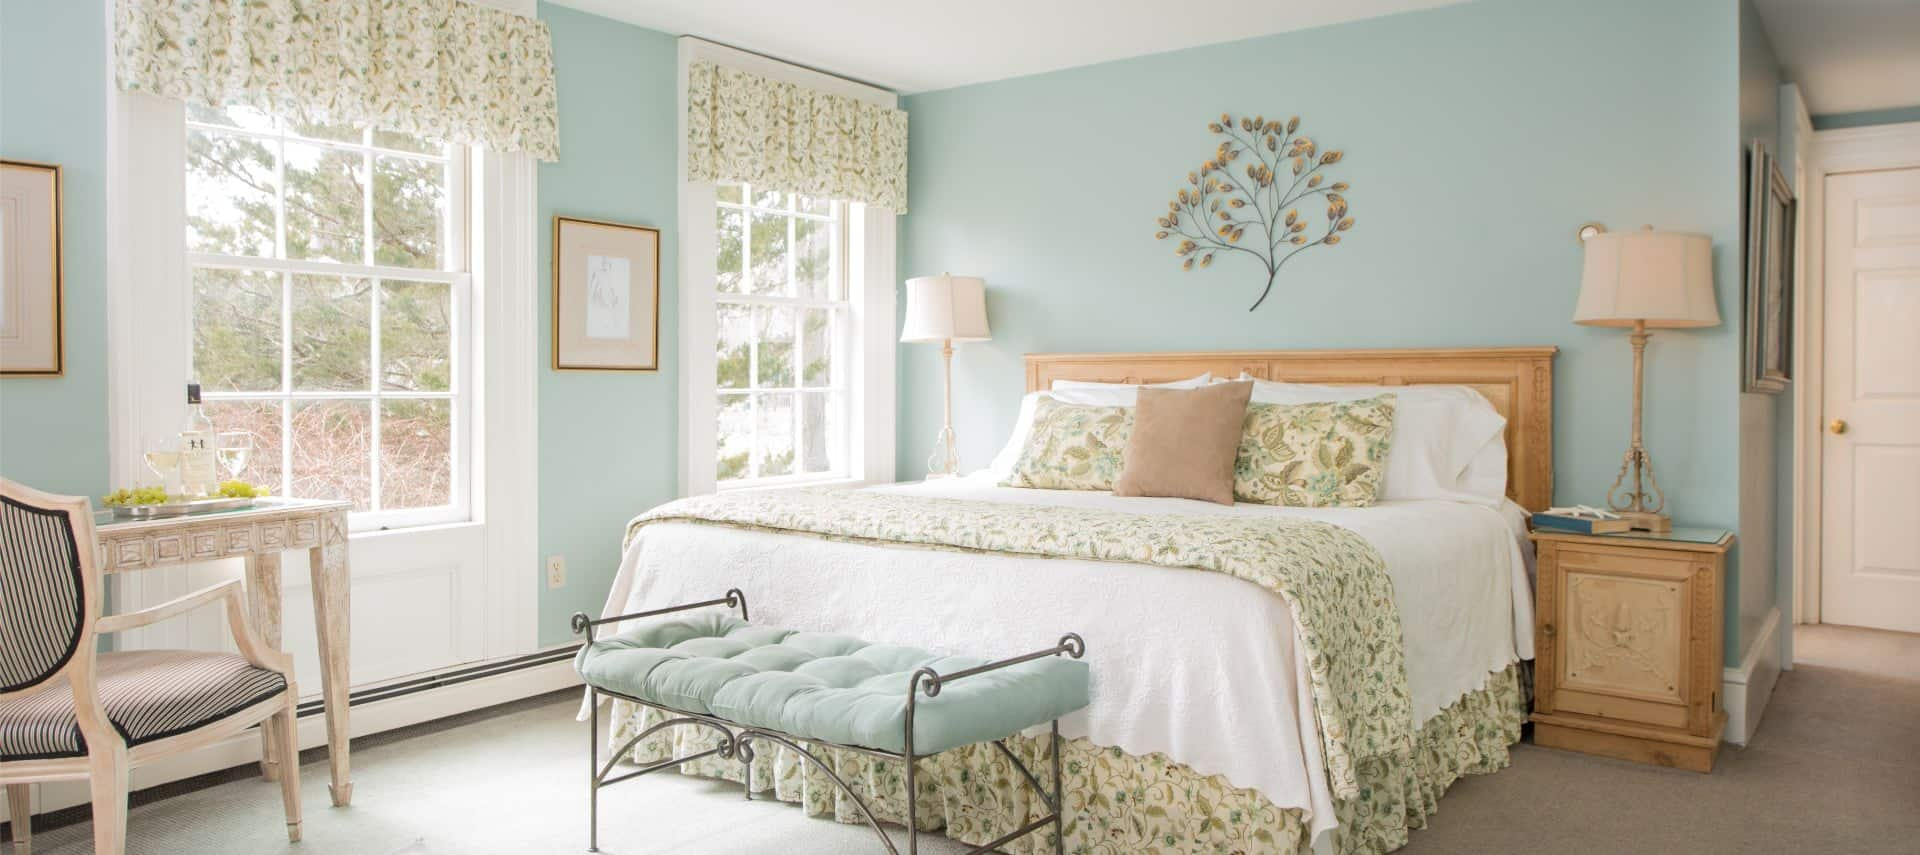 Bedroom with light mint walls and light colored carpeting, light wooden headboard with white and floral linens, rod iron bench with mint colored cushion, and light wooden nighttables with lamps